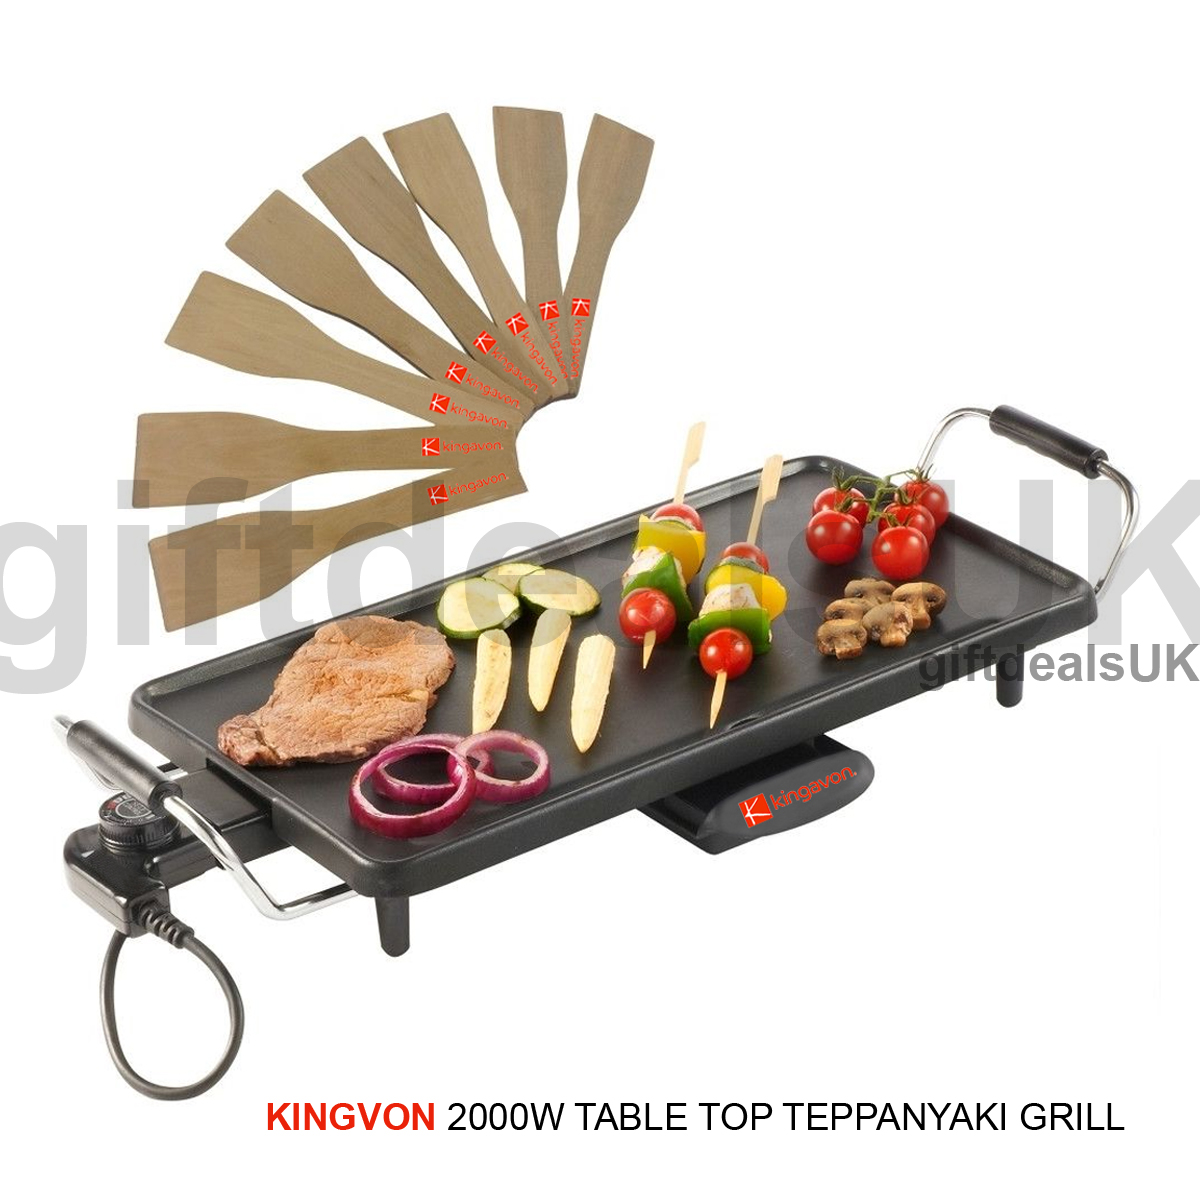 2000W ELECTRIC TEPPANYAKI TABLE TOP GRILL GRIDDLE BBQ HOT